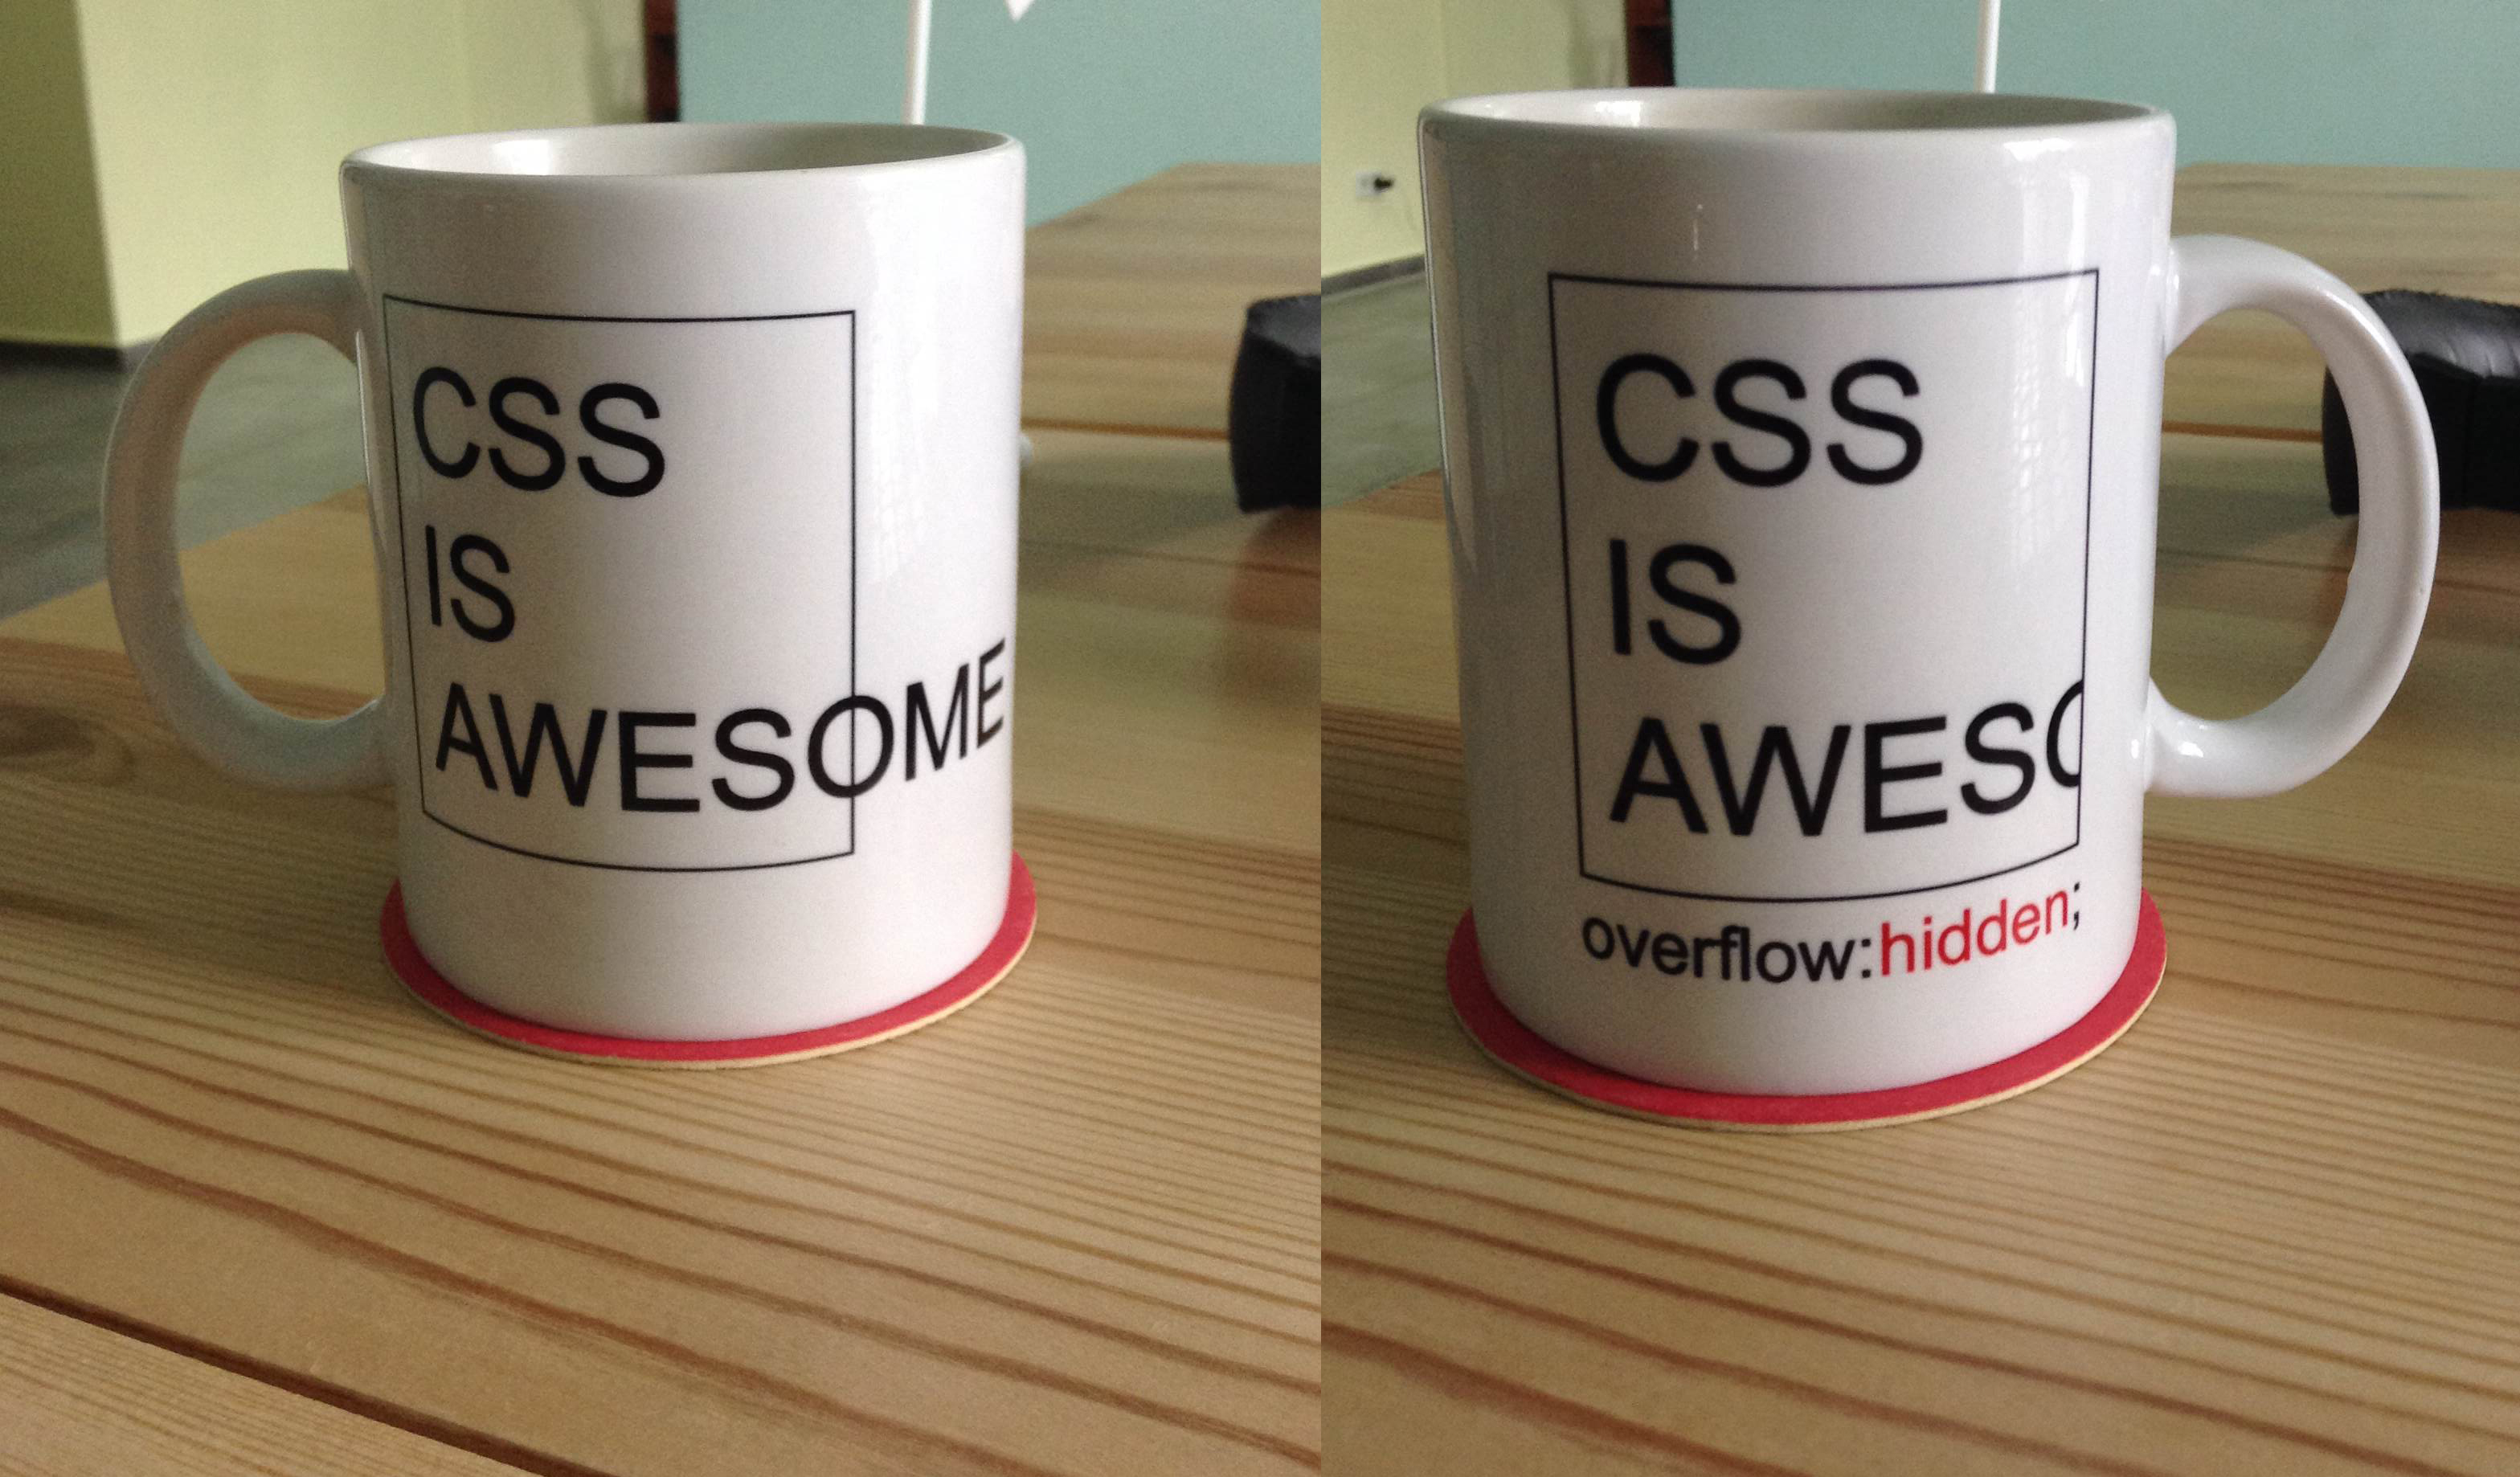 CSS is Awesome by BR0kEN